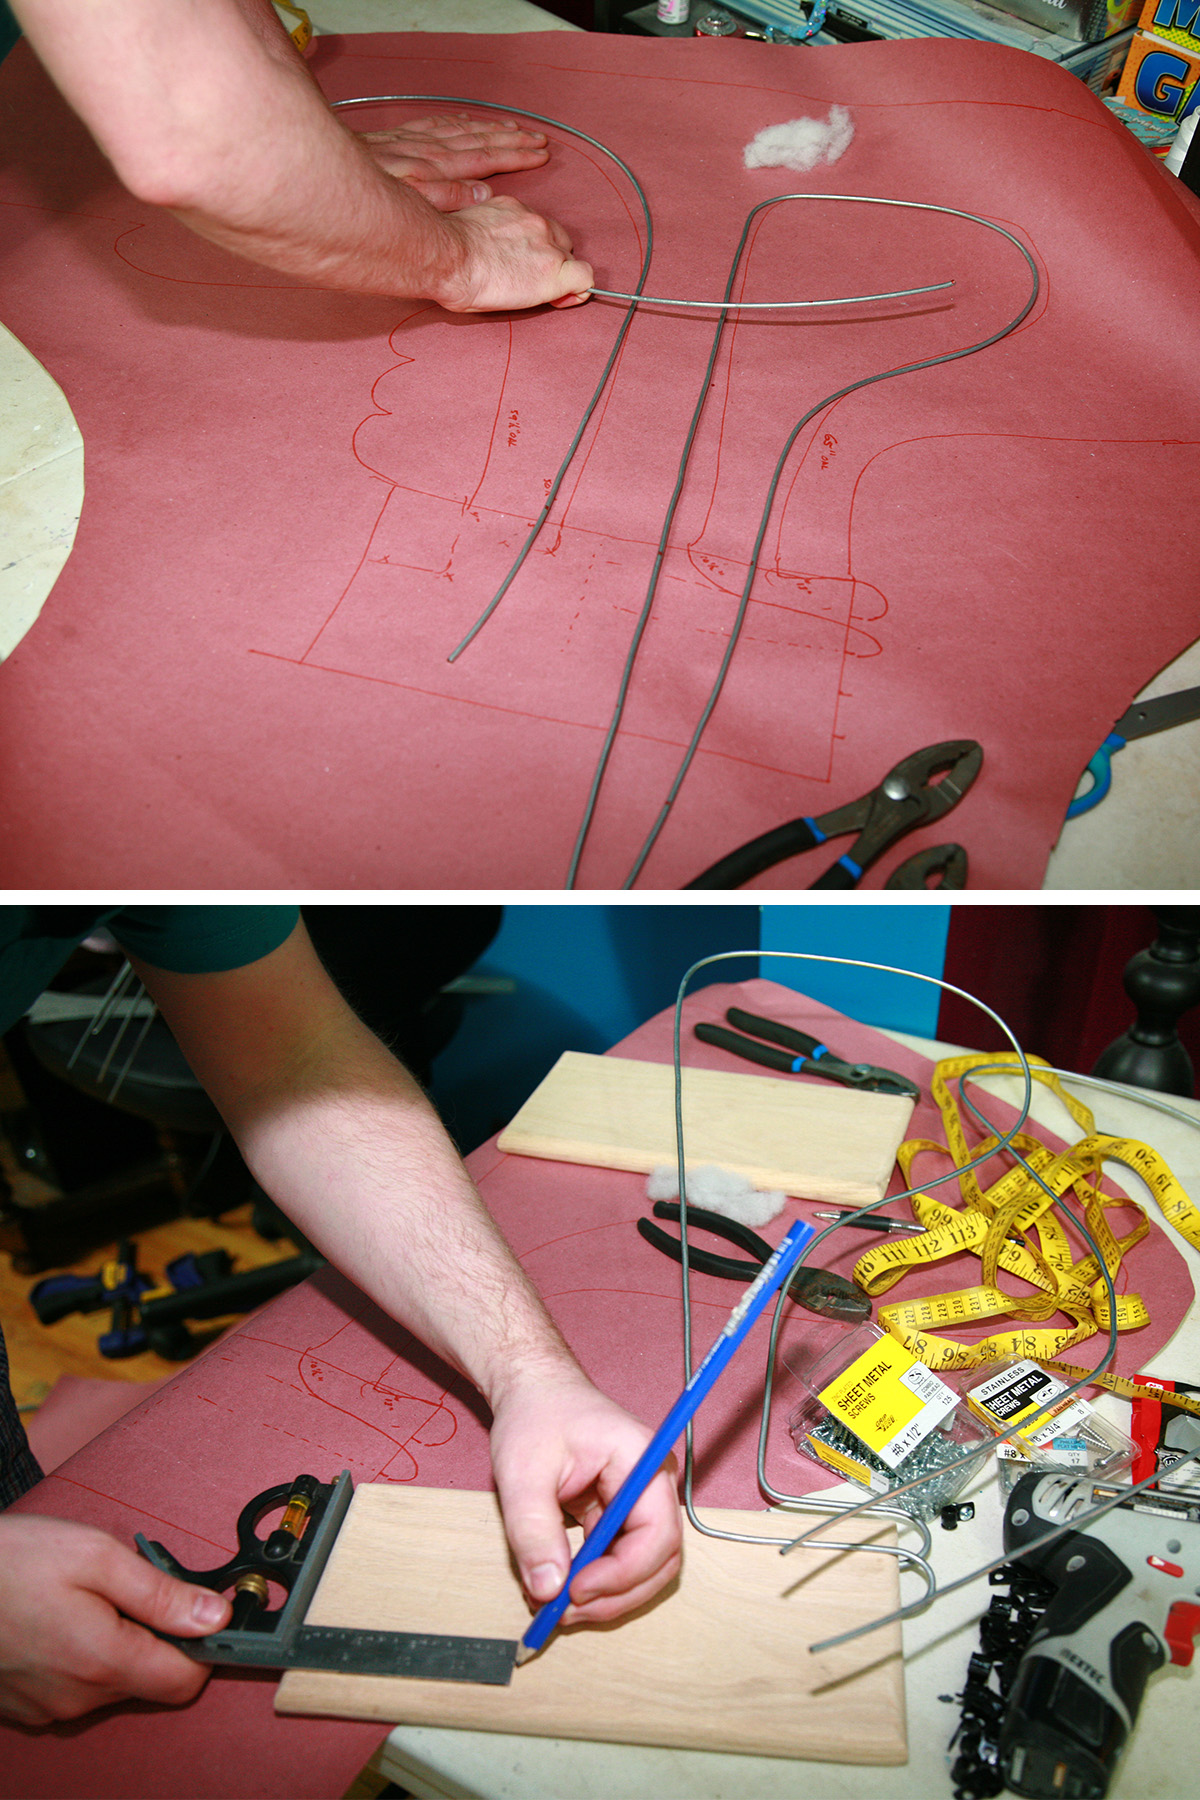 Thick wire being bend into loops, and a man marking a spot on a rectangle of wood.